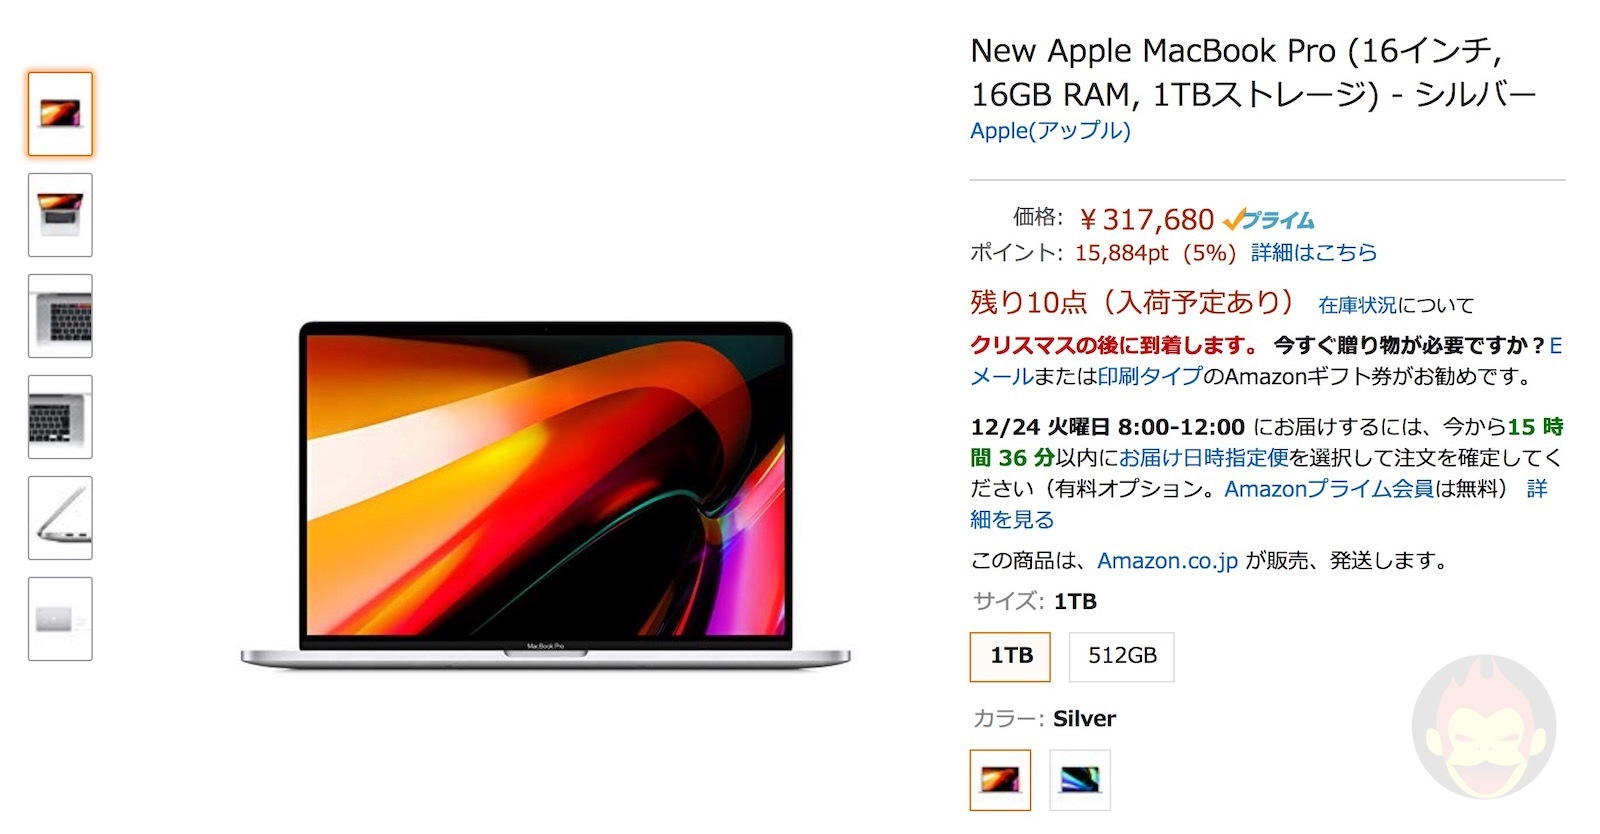 macbook-pro-16inch-on-amazon.jpg